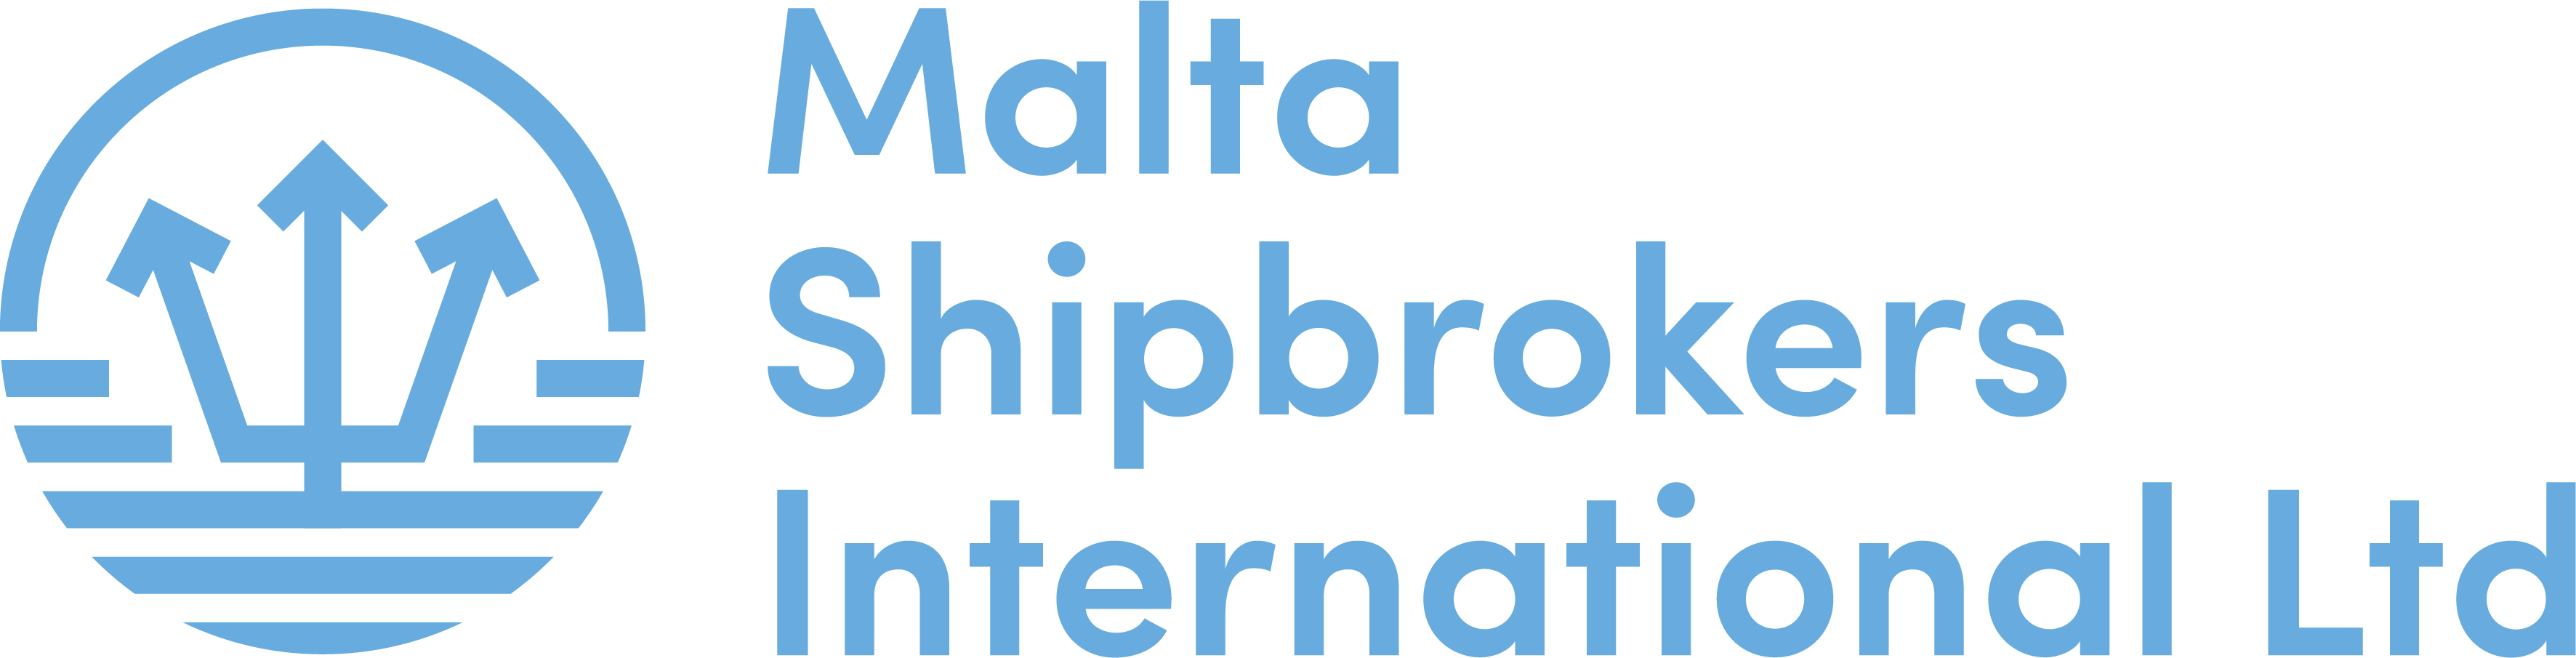 Malta Shipbrokers International Ltd